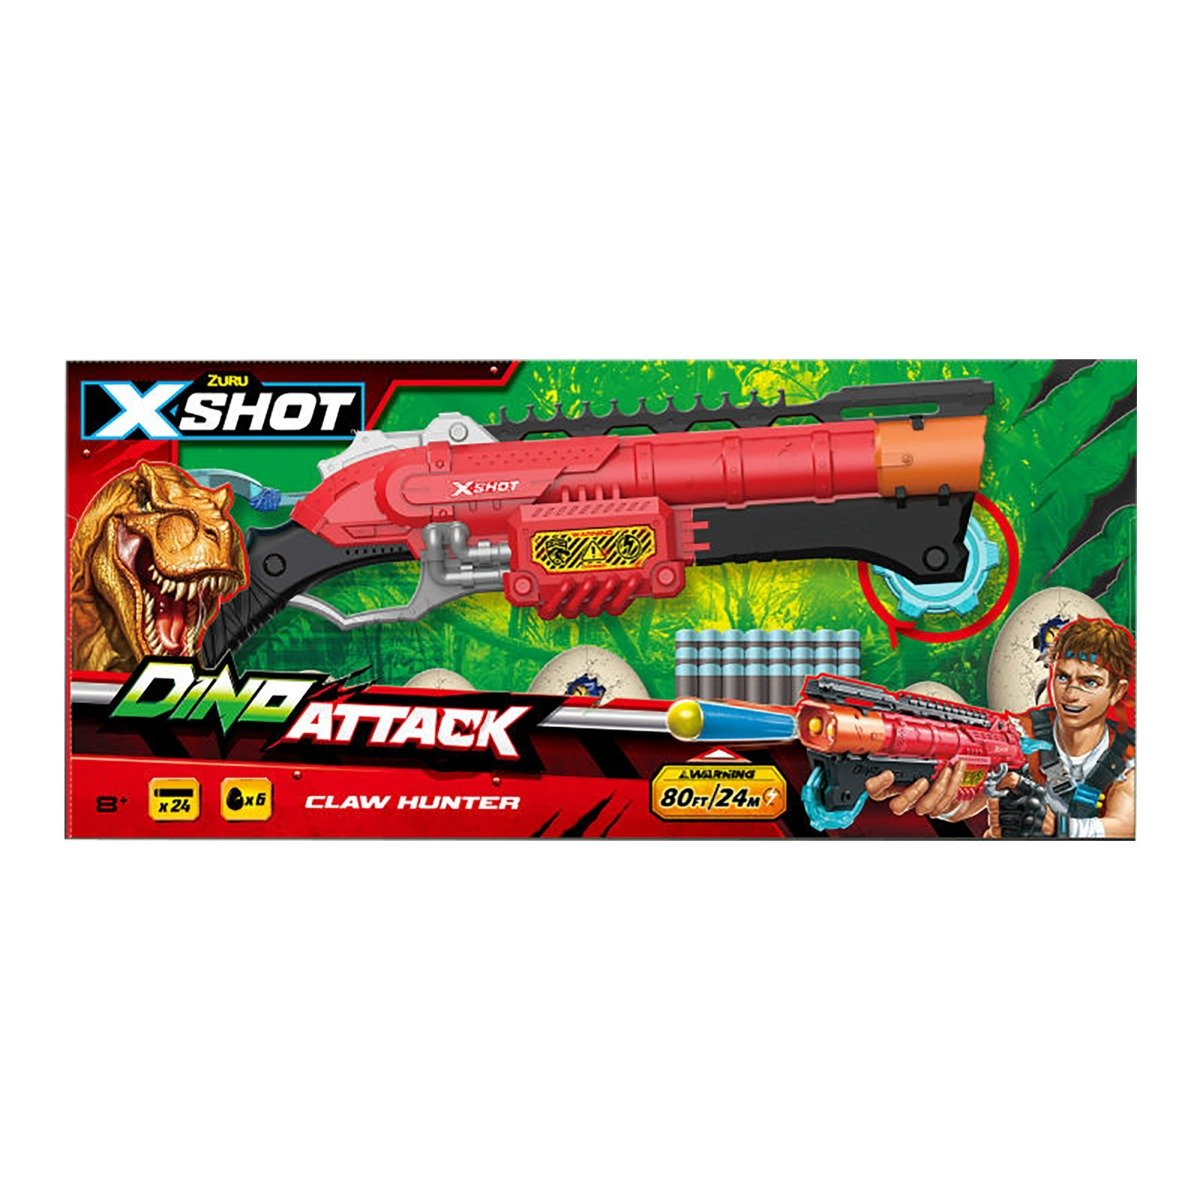 Blaster X-Shot Dino Attack Claw Hunter, 24 proiectile